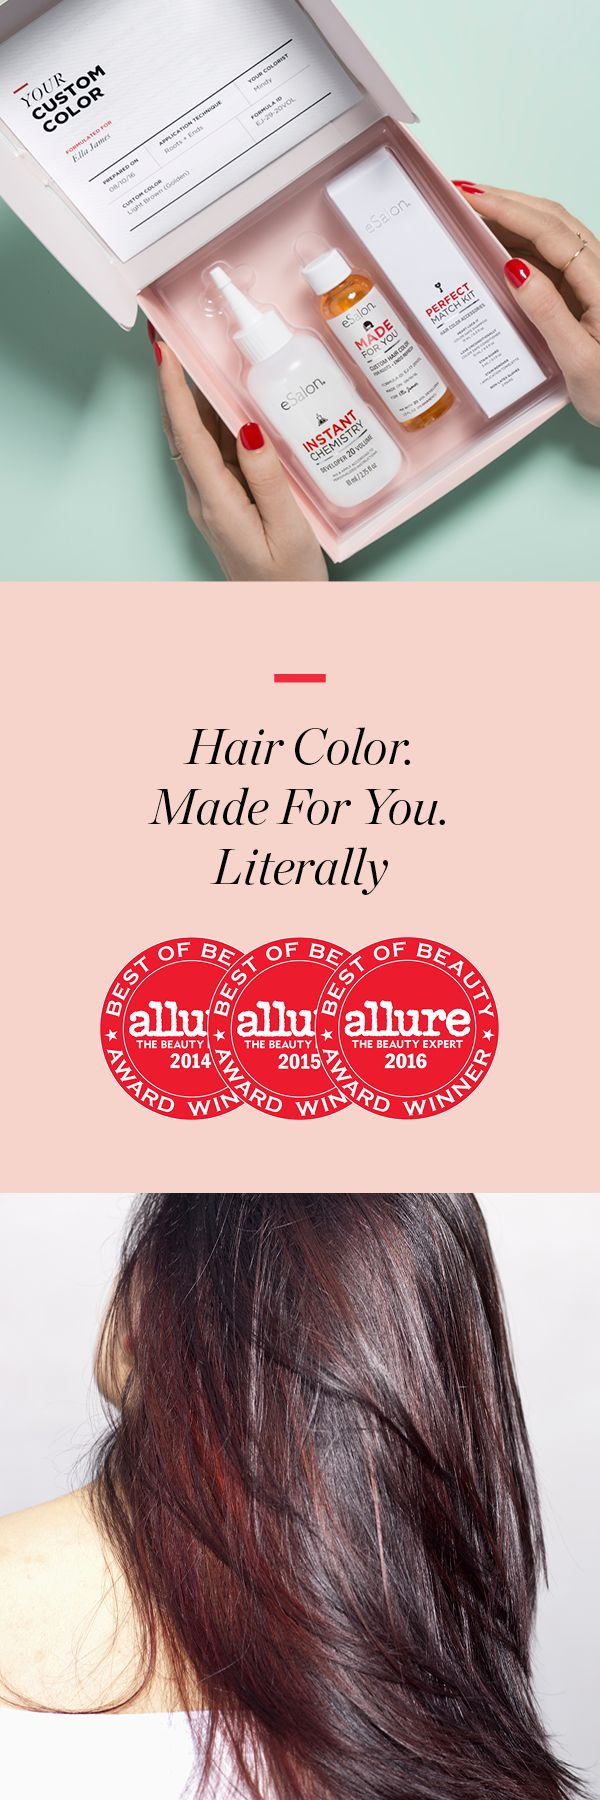 Award-winning color, formulated-to-order. Longtime client Sybil H. says, �I immediately knew I found something that works�works for me, works for my hair, works for my lifestyle.�